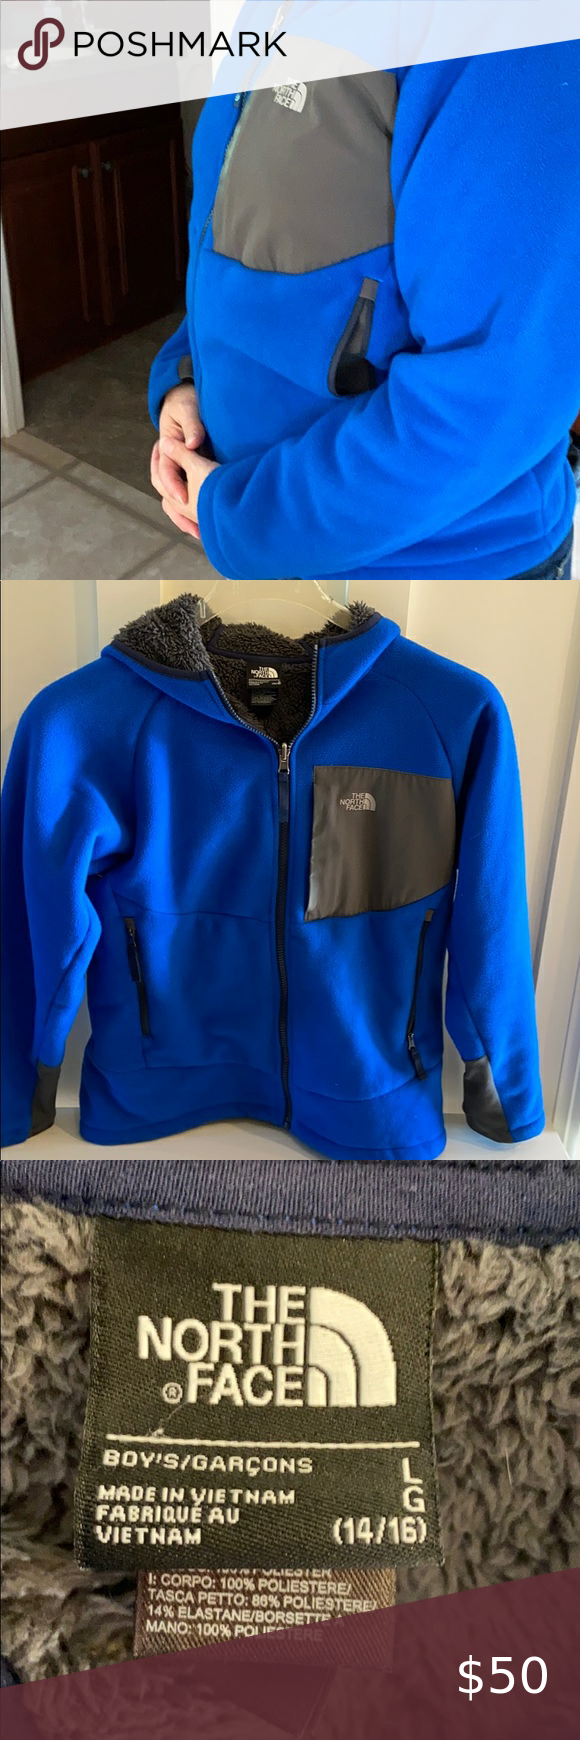 Boys North Face Coat Rarely Used In 2020 North Face Coat North Face Jacket The North Face [ 1740 x 580 Pixel ]